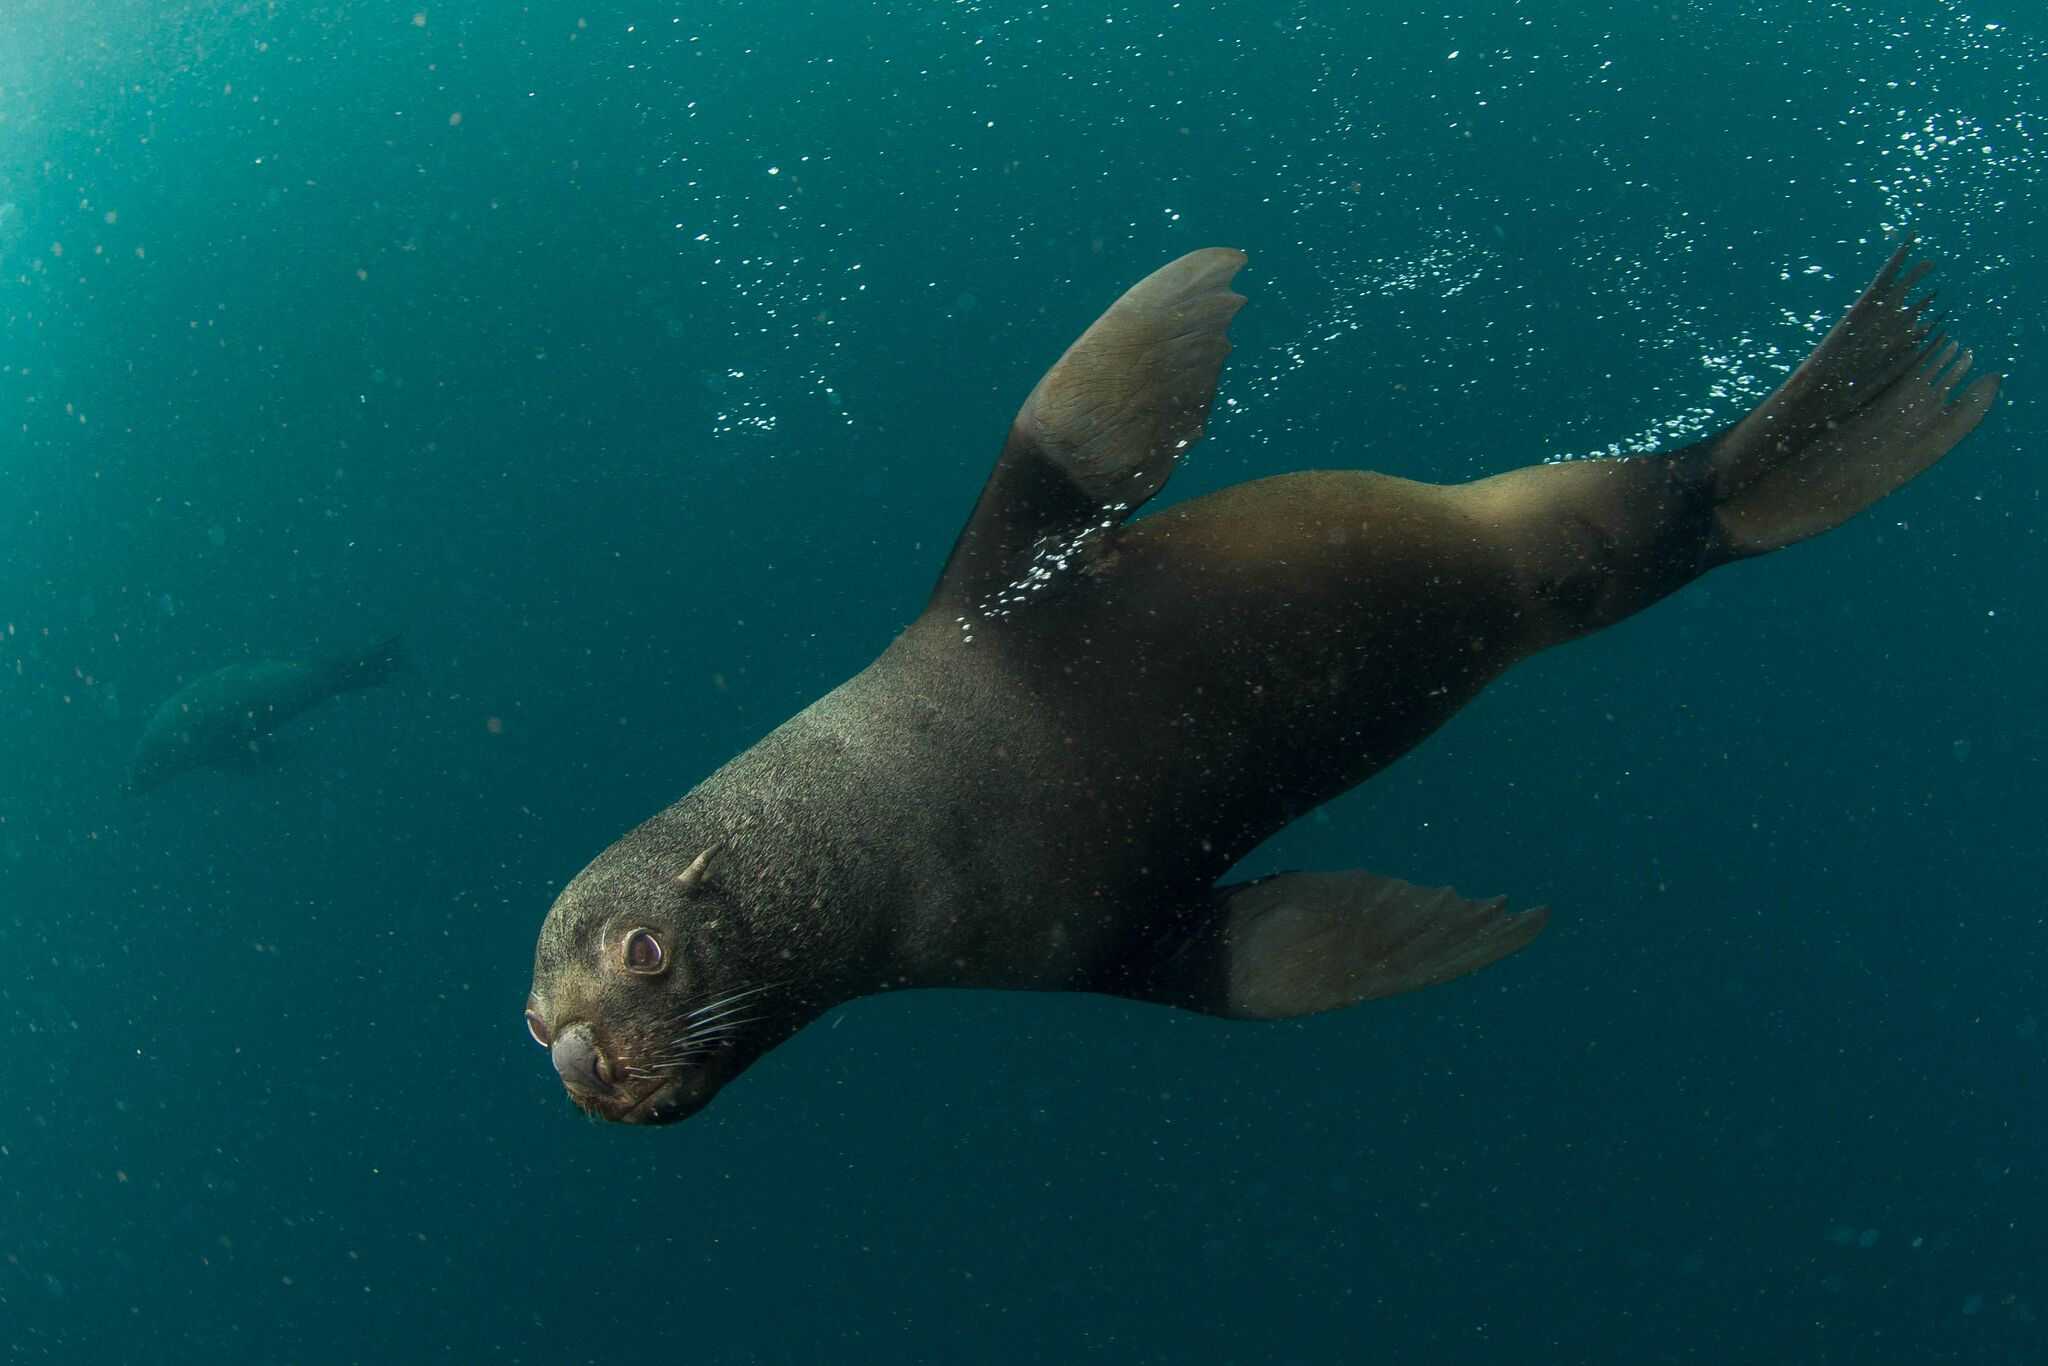 South American fur seals glide by National Geographic Pristine Seas divers in the waters of Yaganes off the southern coast of Argentina. Photo by Enric Sala/National Geographic.